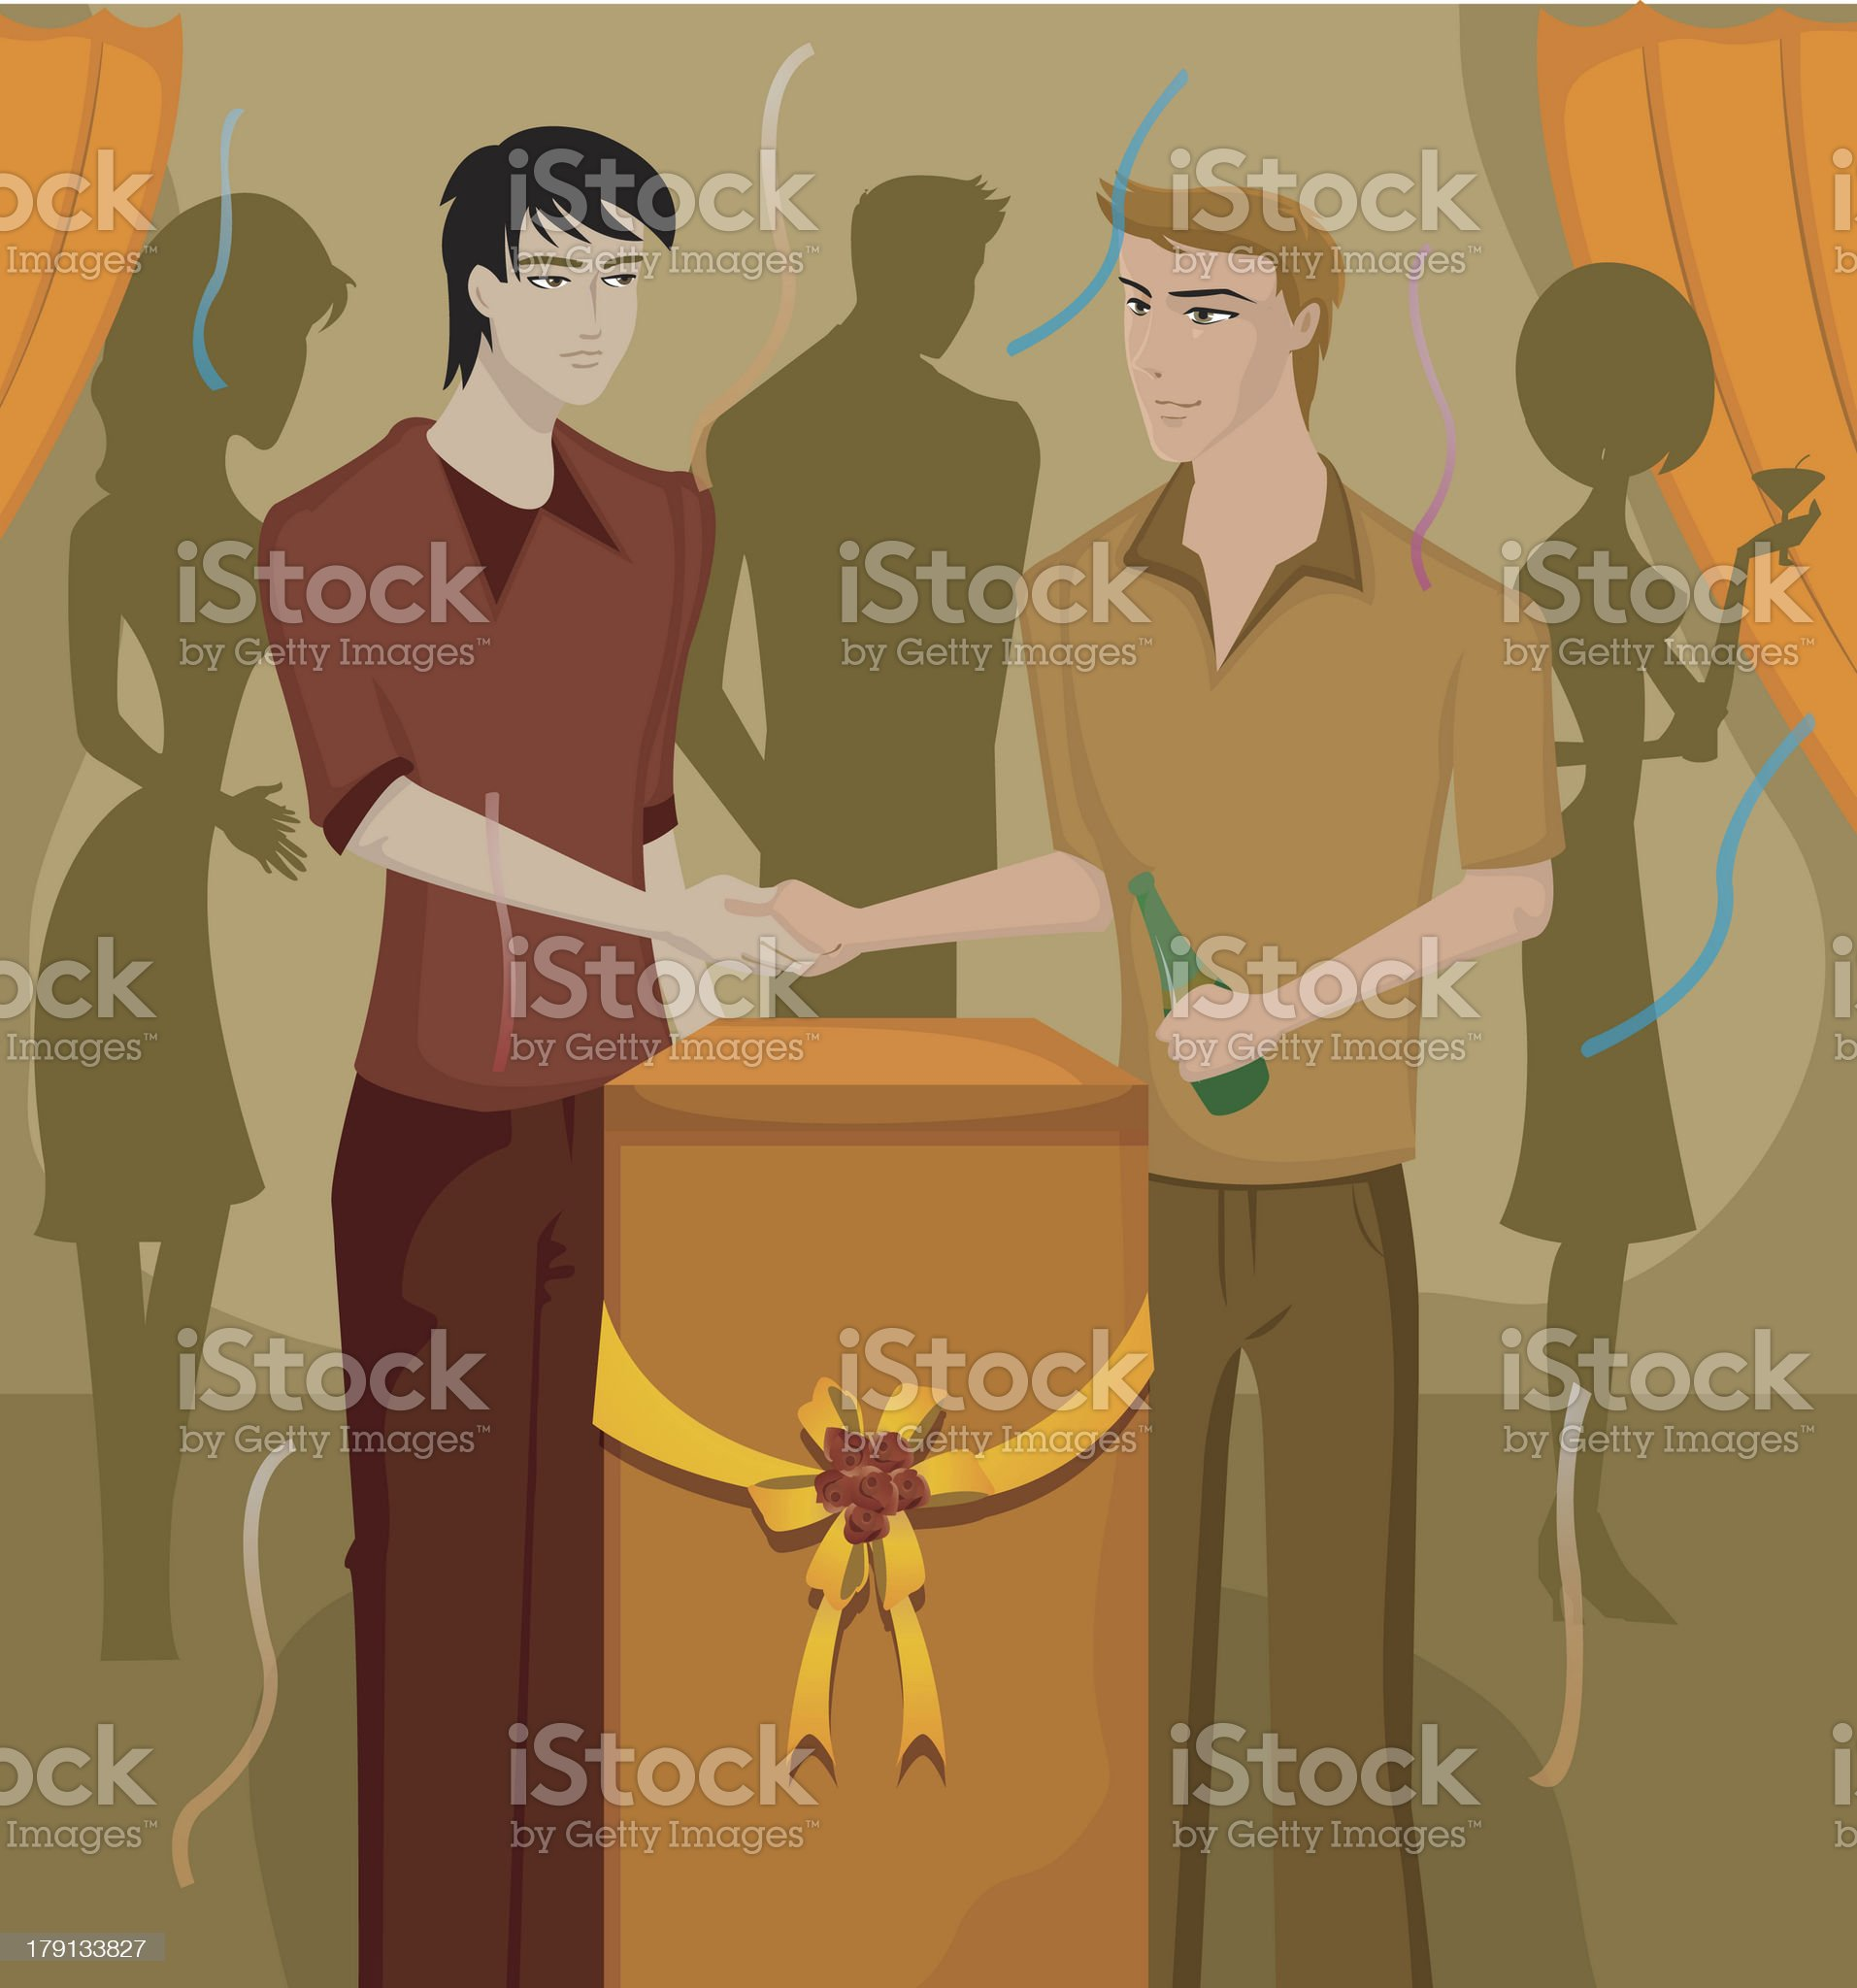 men shaking hands at a party royalty-free stock vector art